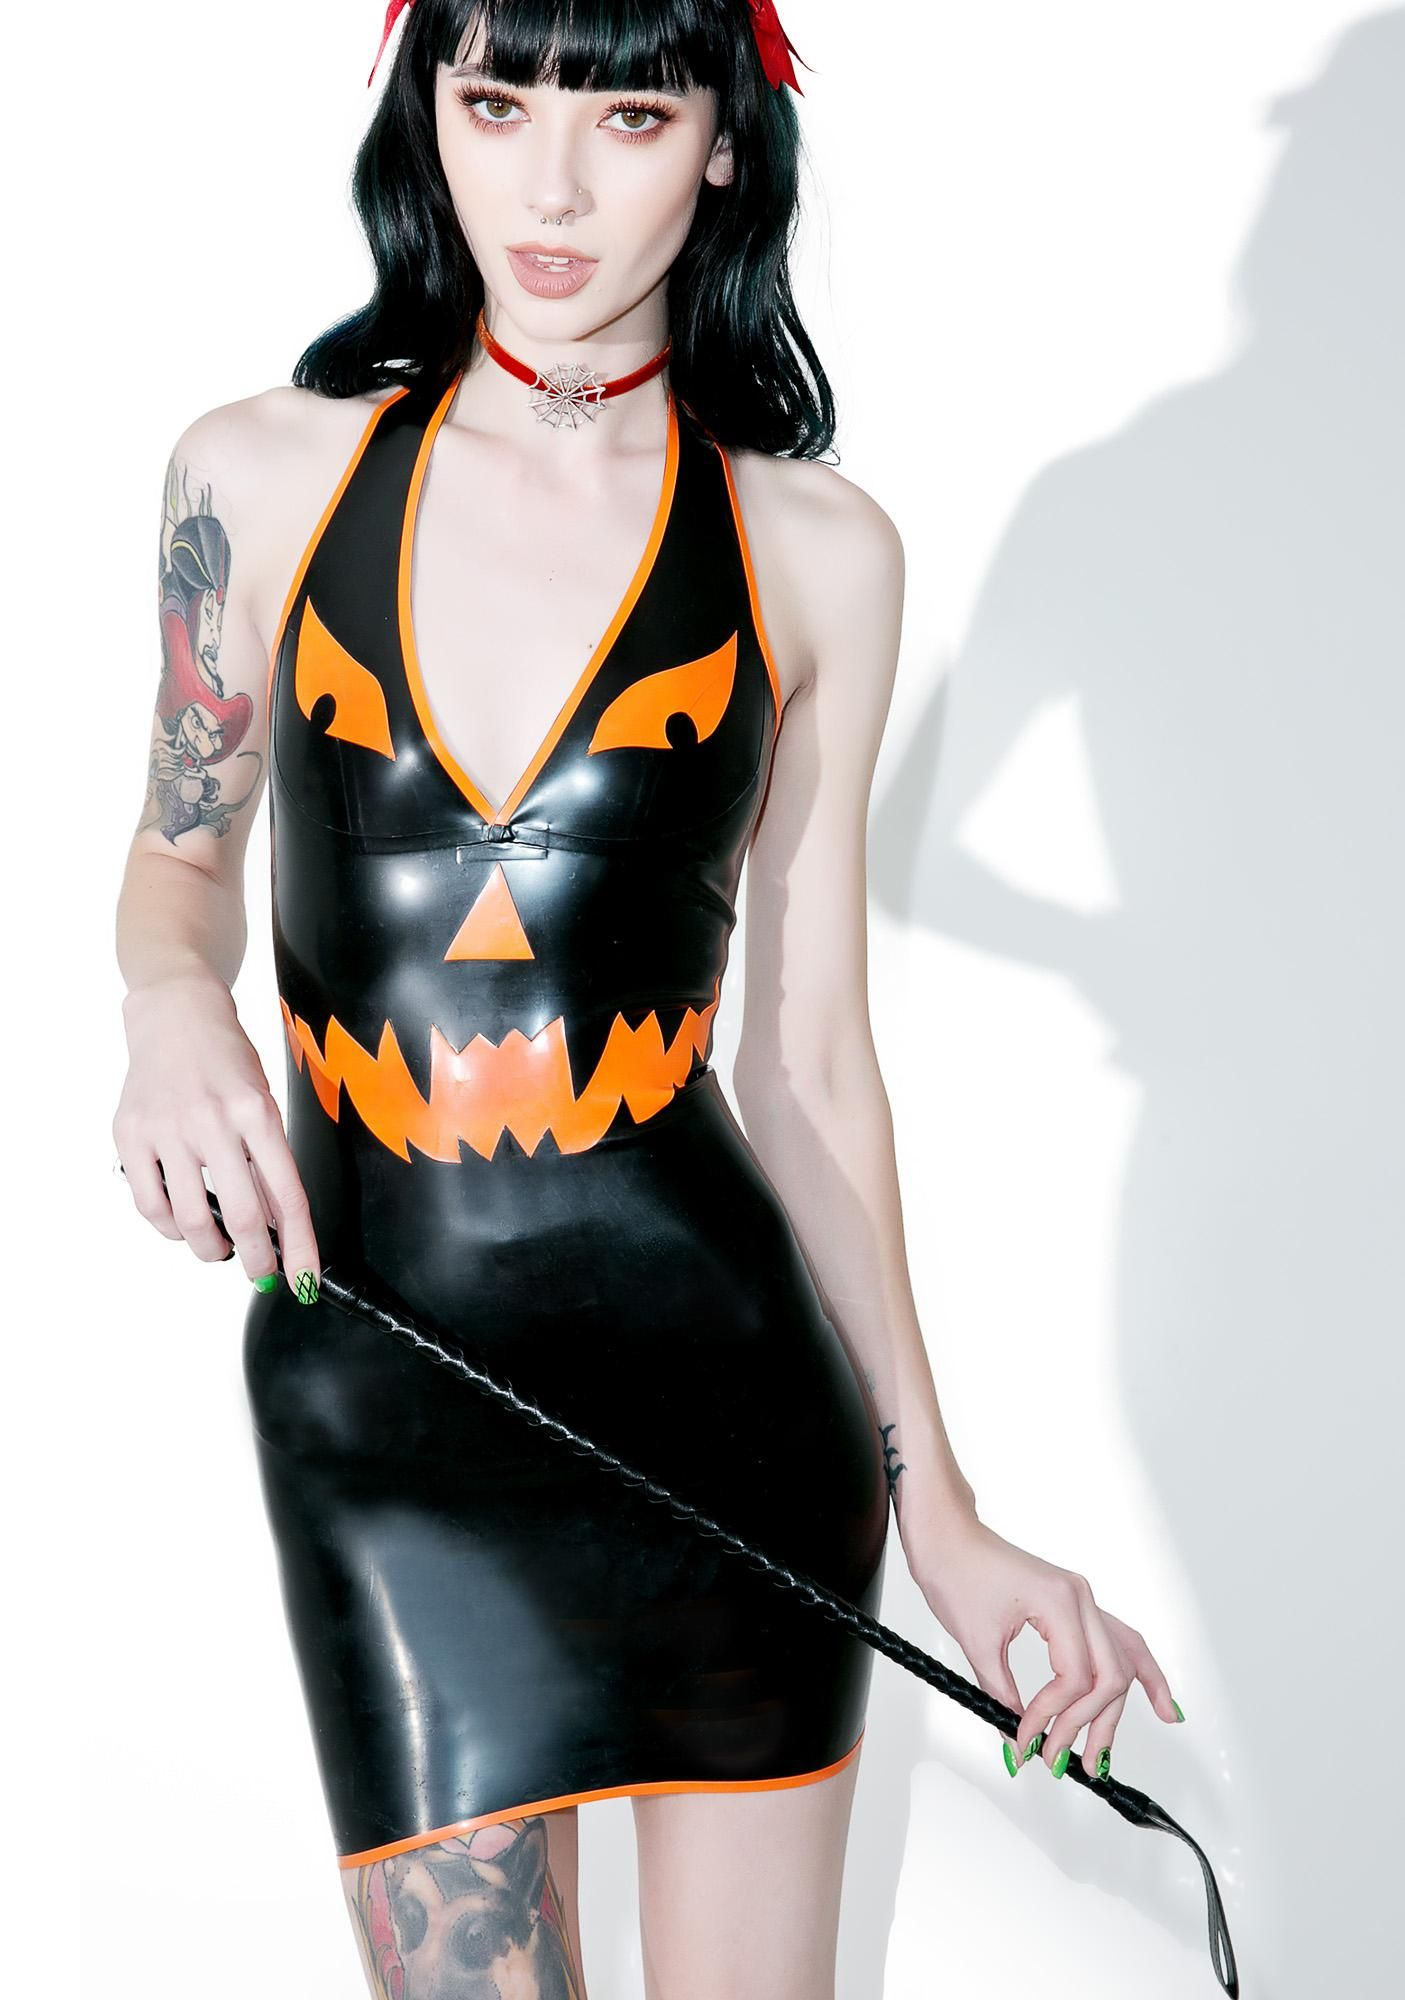 0ffdc097a41 Jane Doe Latex Pumpkin Halter Neck Mini Dress ...we luvv seein  a ...